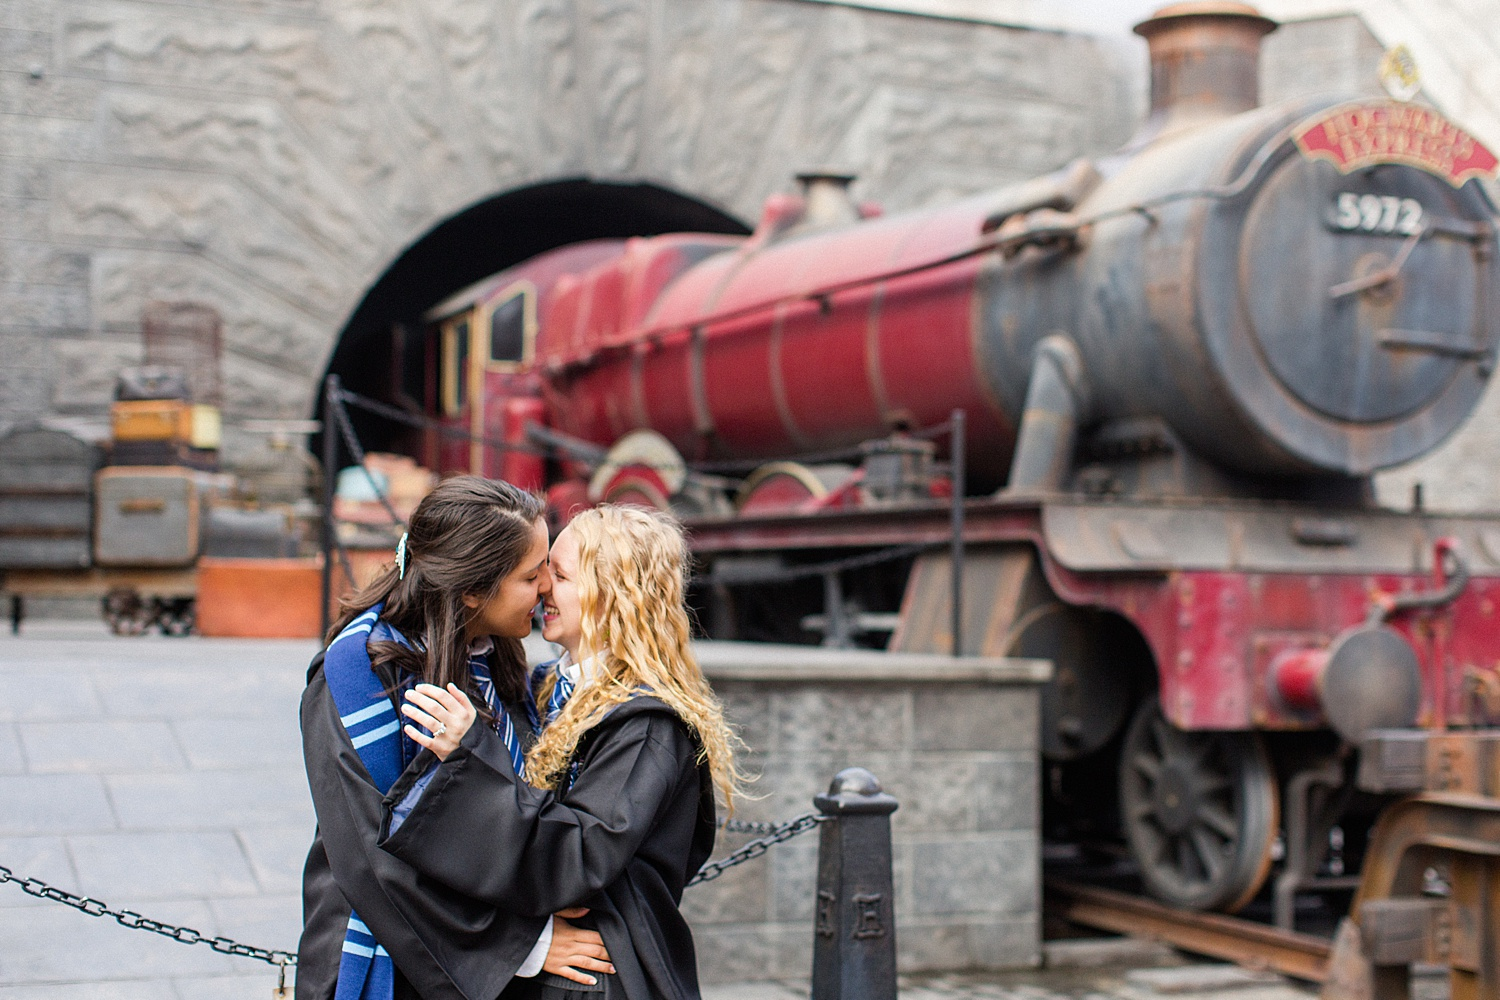 thevondys.com | Harry Potter World Engagement | Universal Studios | Los Angeles Wedding Photographer | The Vondys